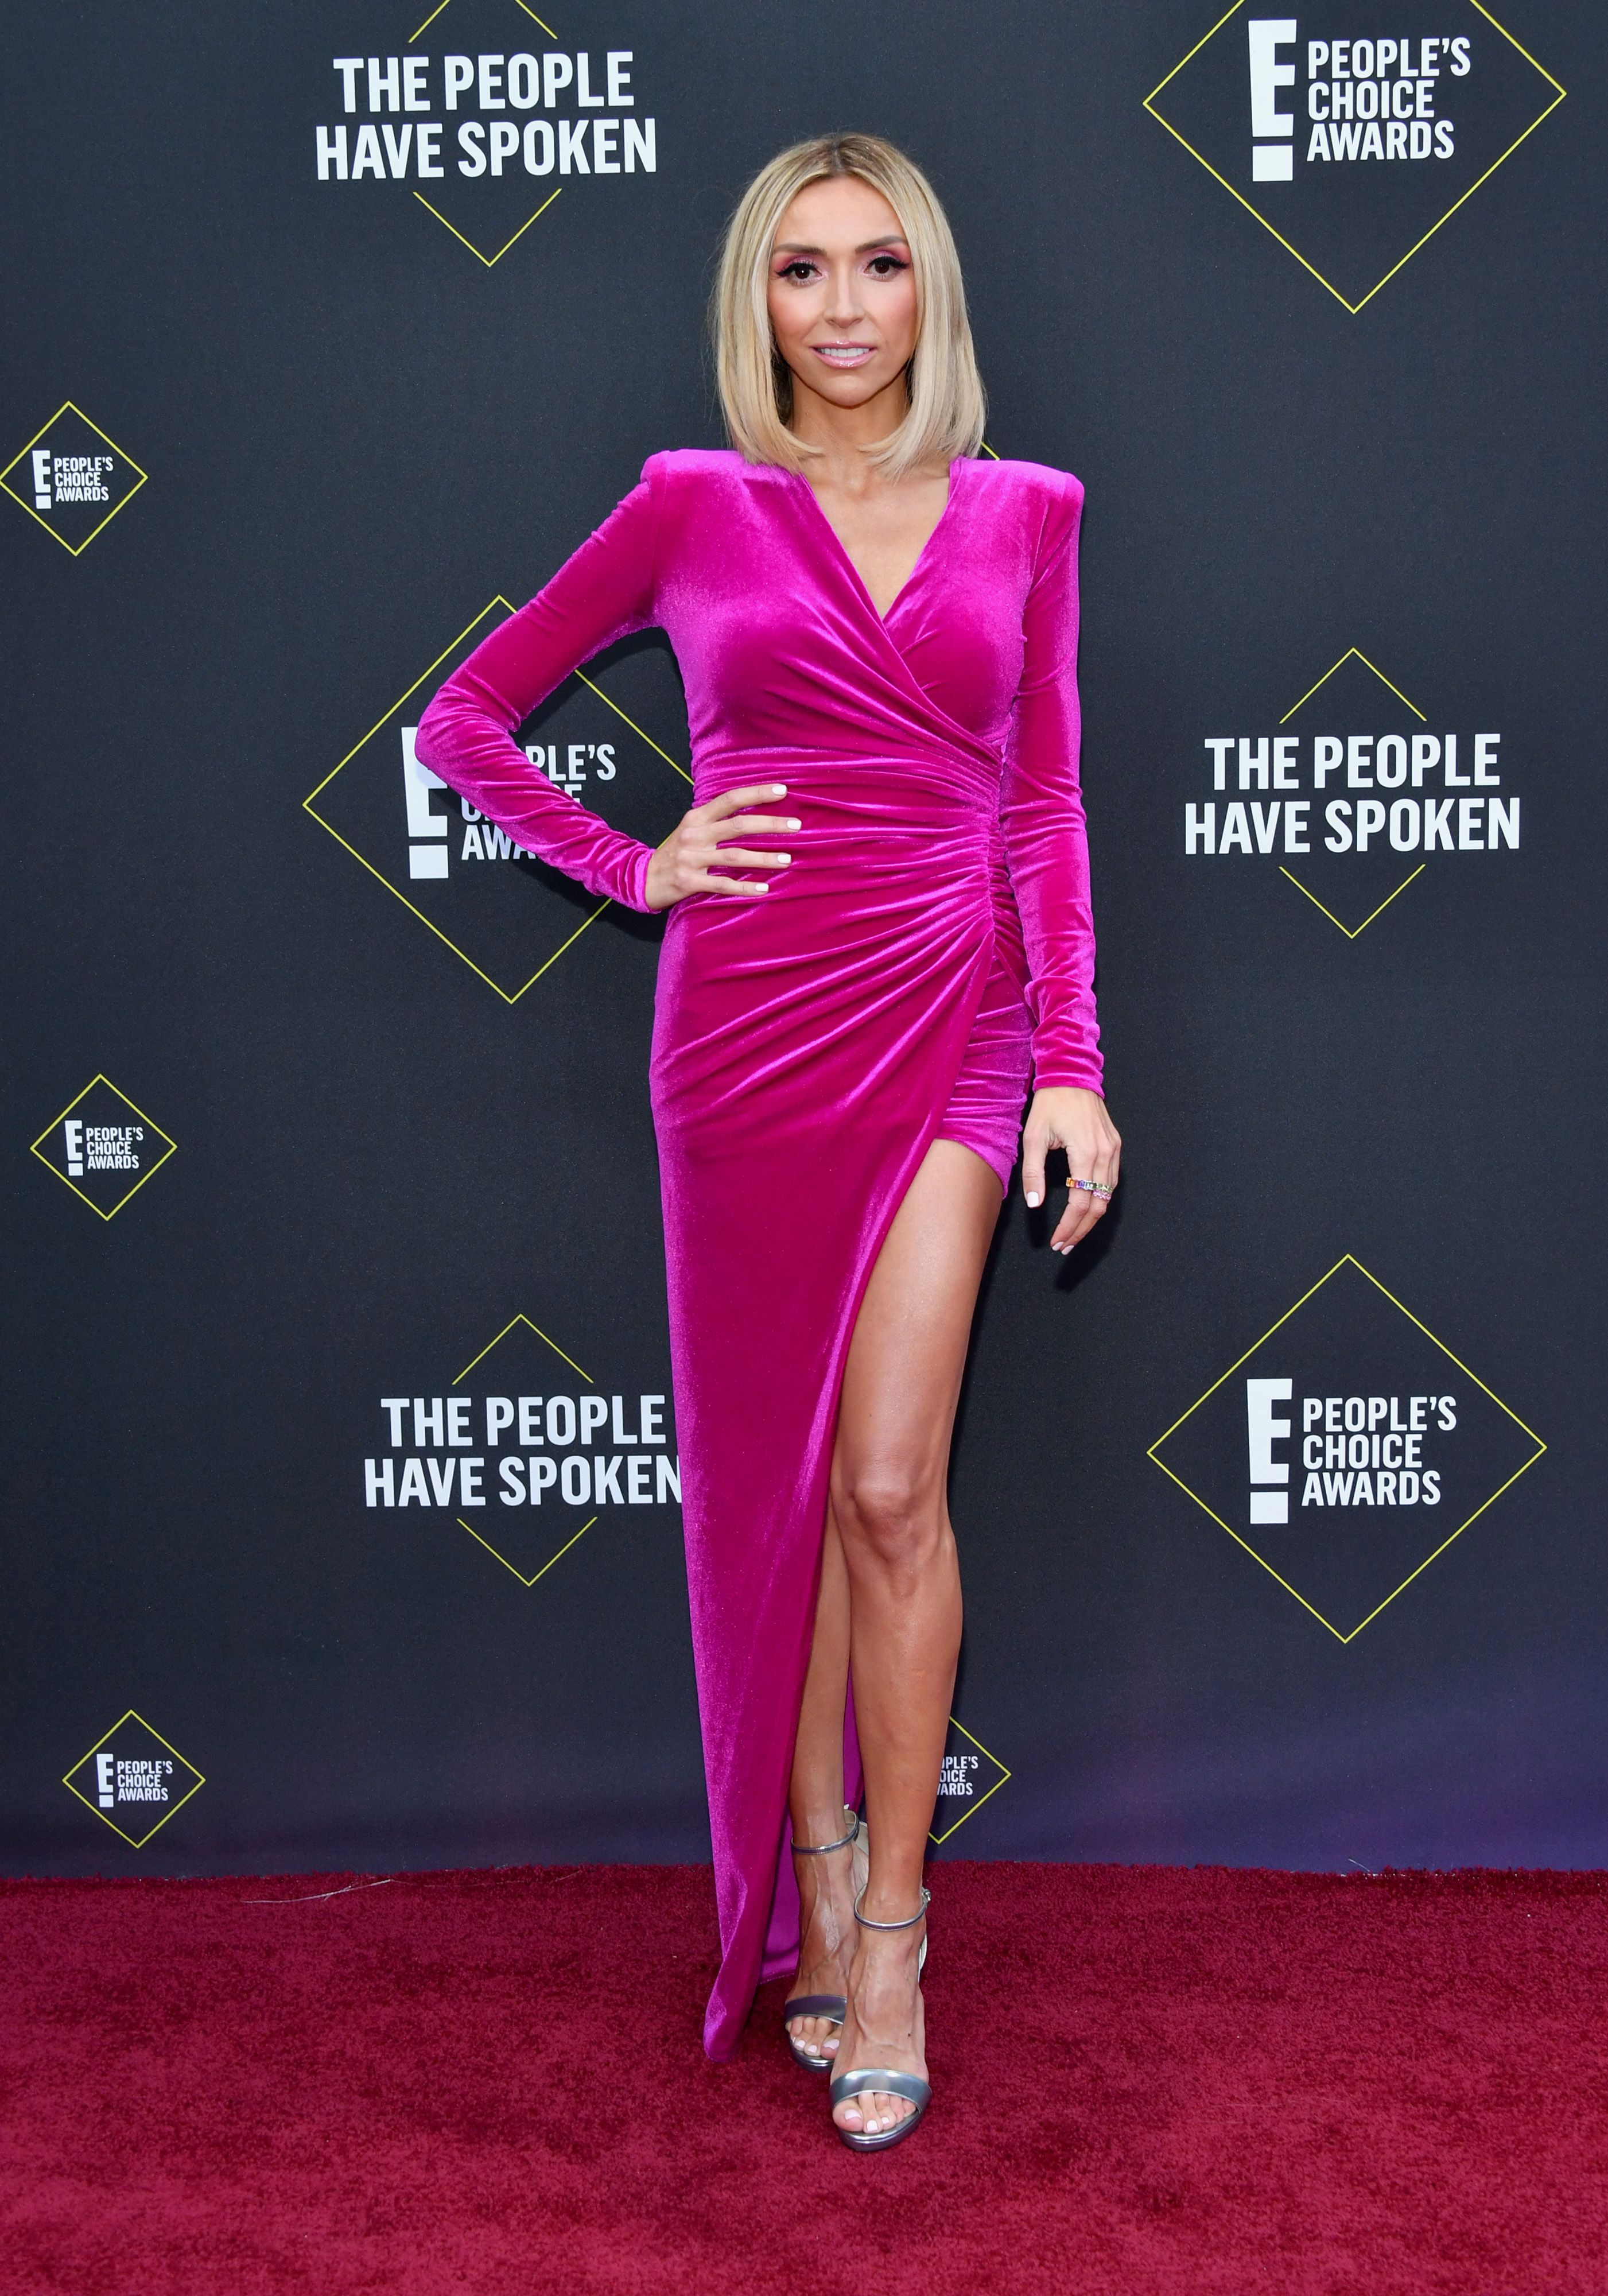 People Are Trolling the People's Choice Awards Over All the Celebs Who Didn't Show Up